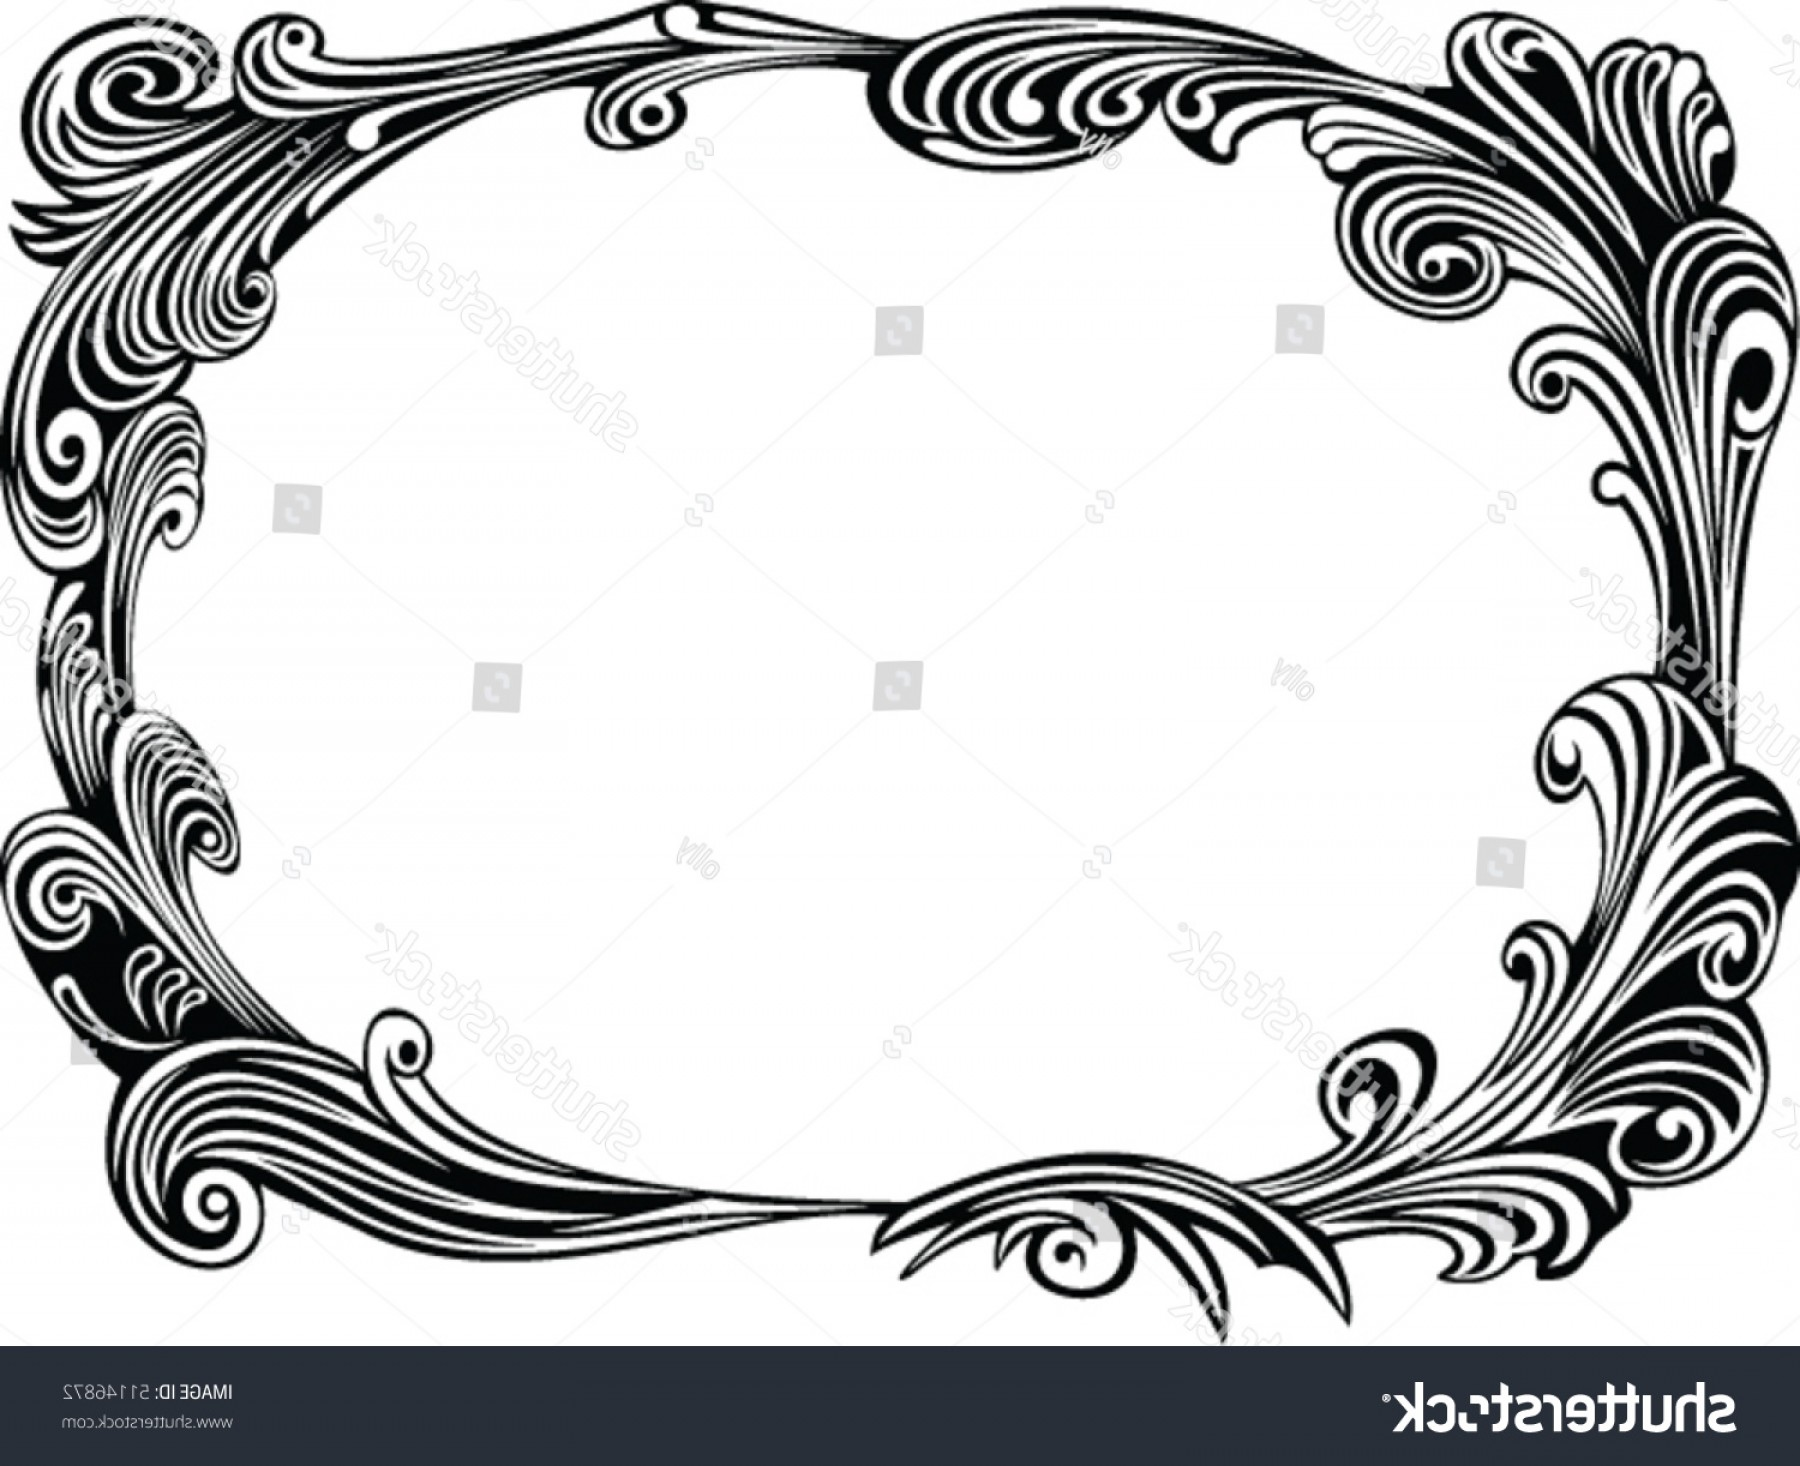 Filigree Oval Frame Vector: Black Decorative Frame Filigree Elements